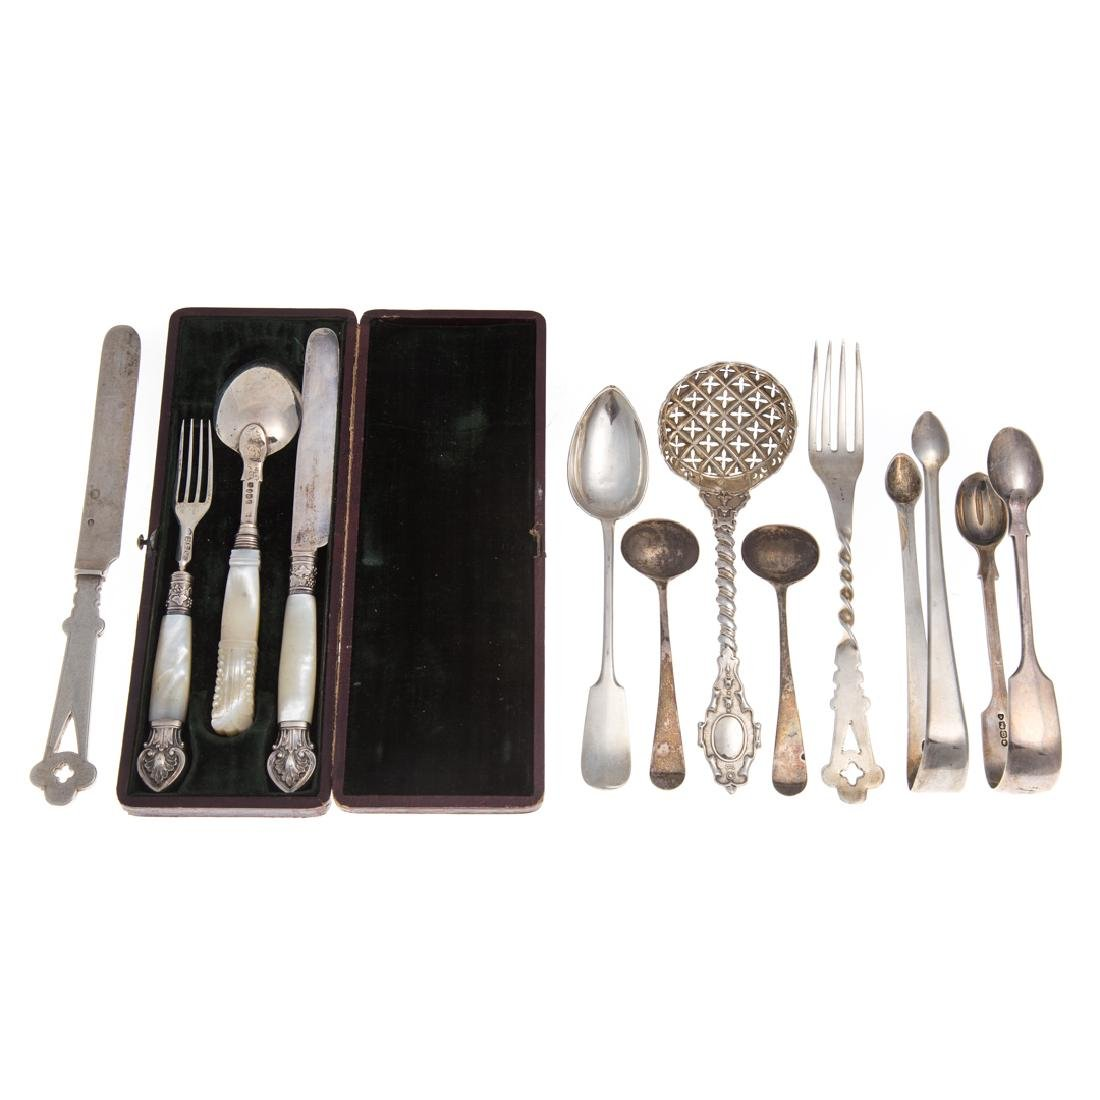 11 pieces English and Continental silver flatware